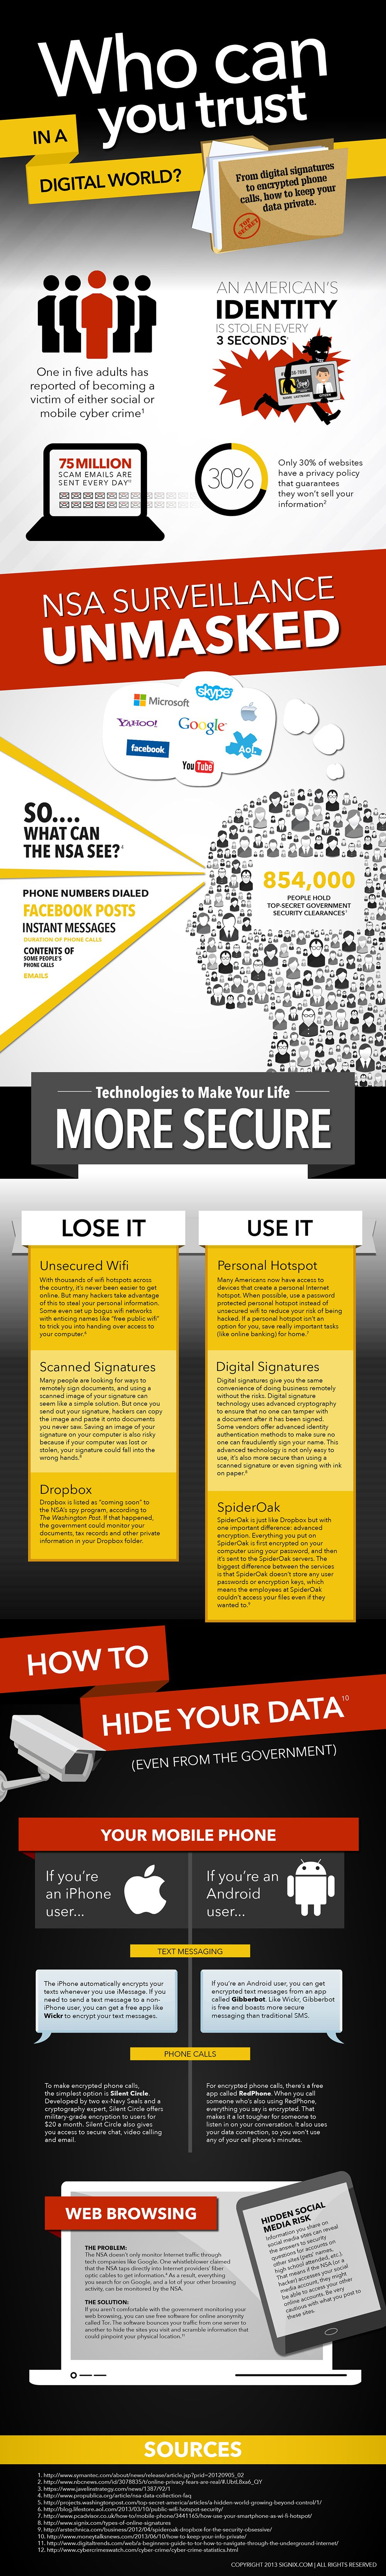 Four Ways Your Data is at Risk | Digital signature, Trust ...